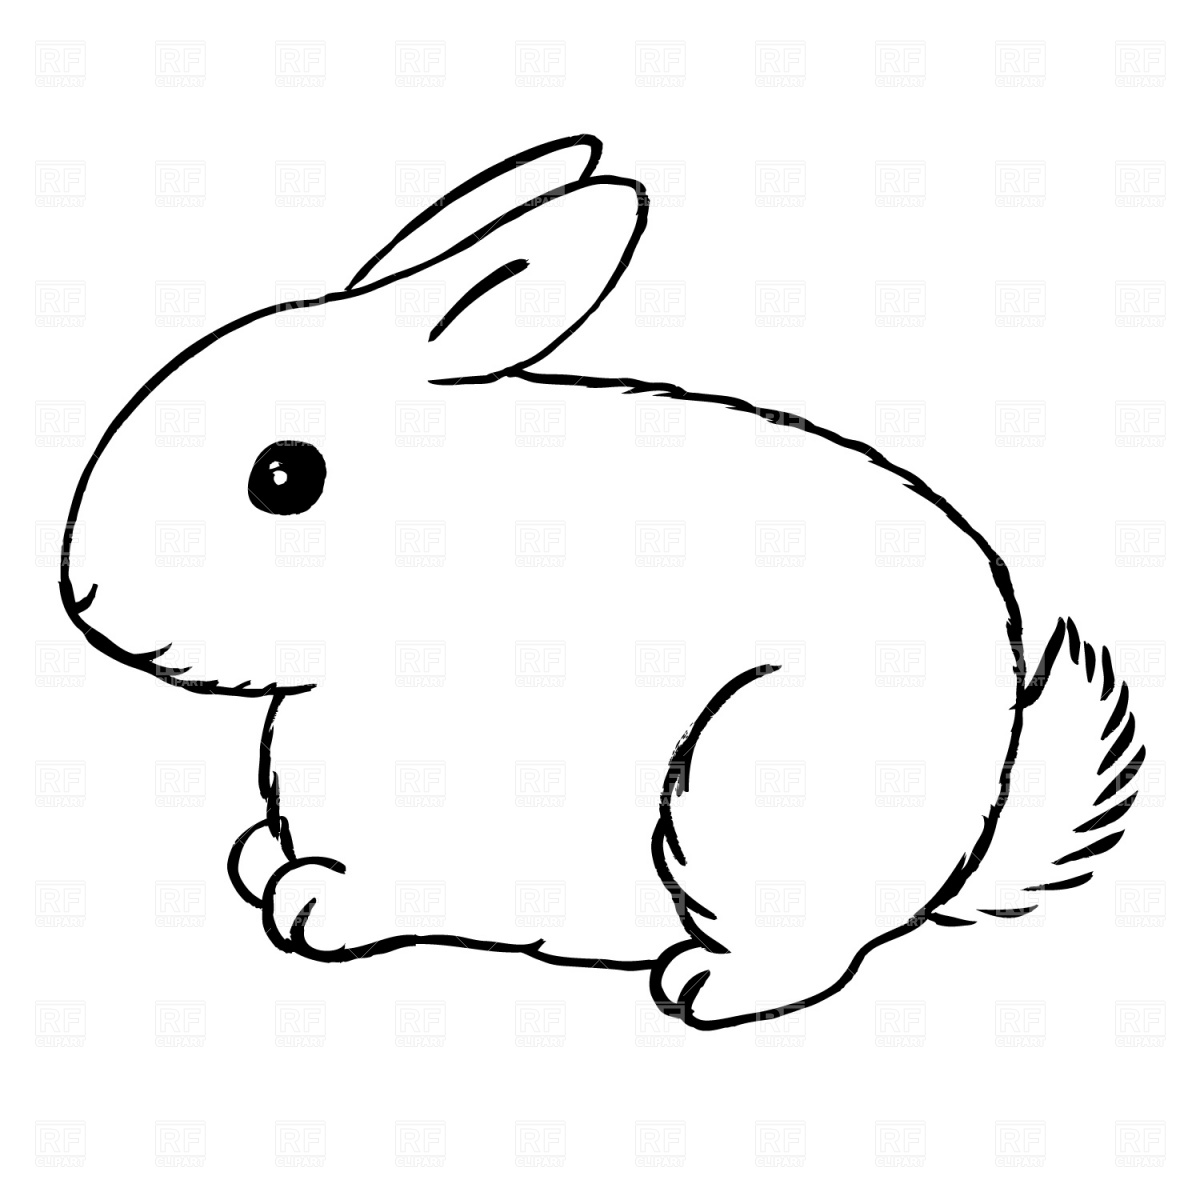 Bunny clipart black and white - Rabbit Clipart Black And White